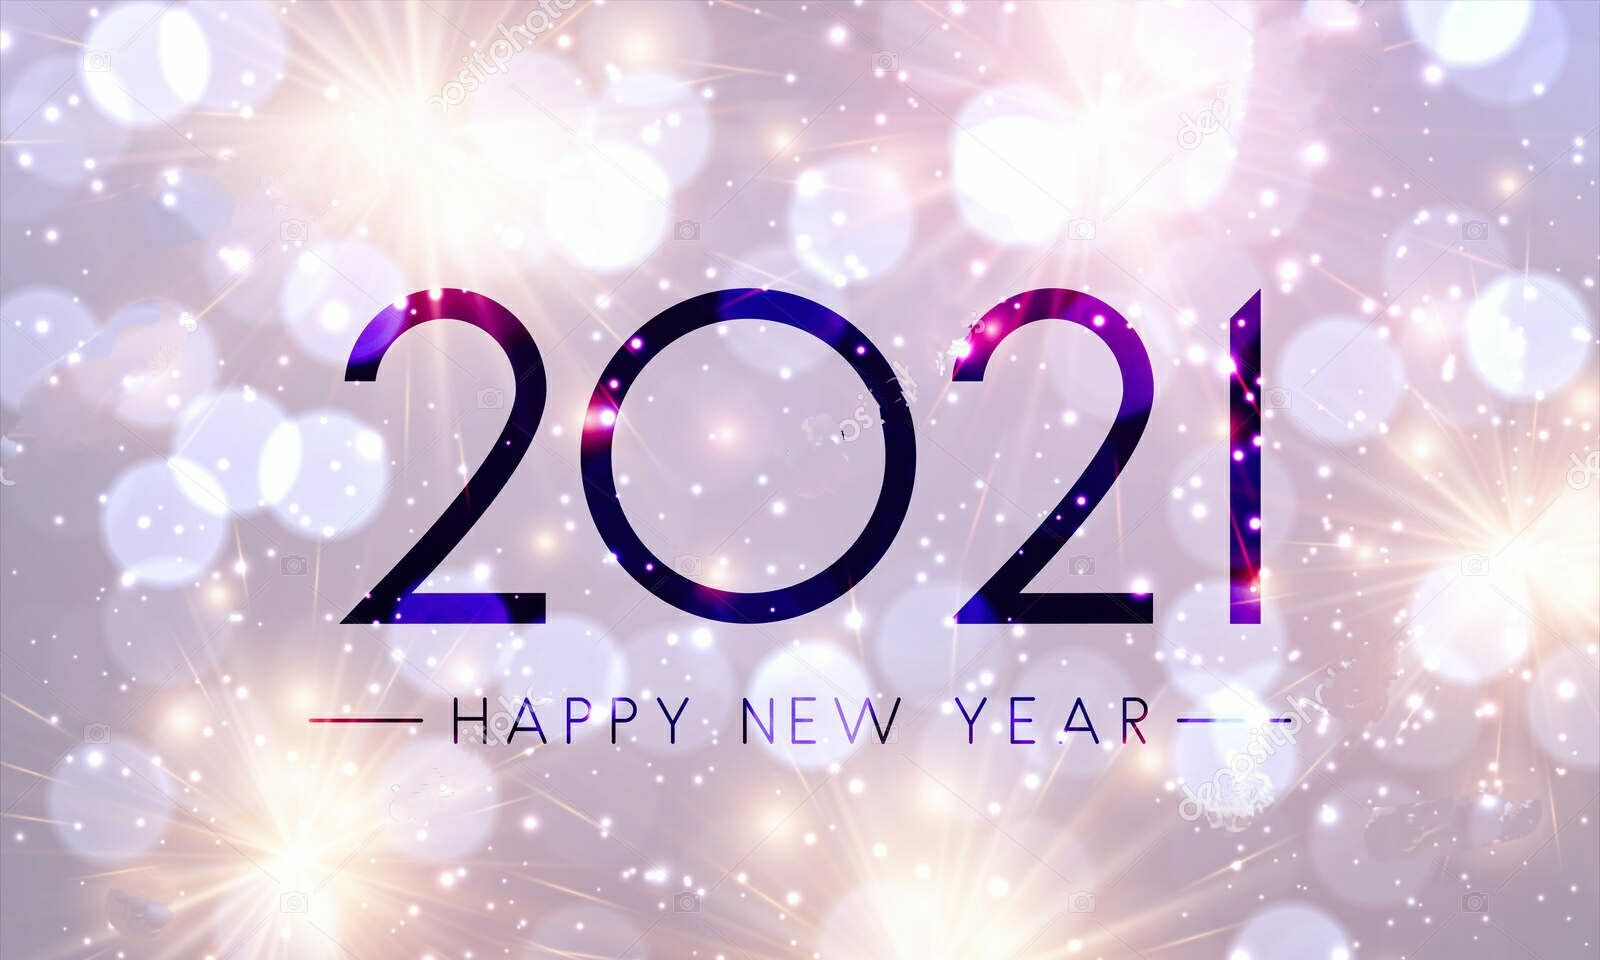 107 Happy New Year 2021 Images Download Wishes Wallpapers Happy New Year Wishes New Year Wishes Happy New Year Pictures Happy new year 2021 wallpaper hd